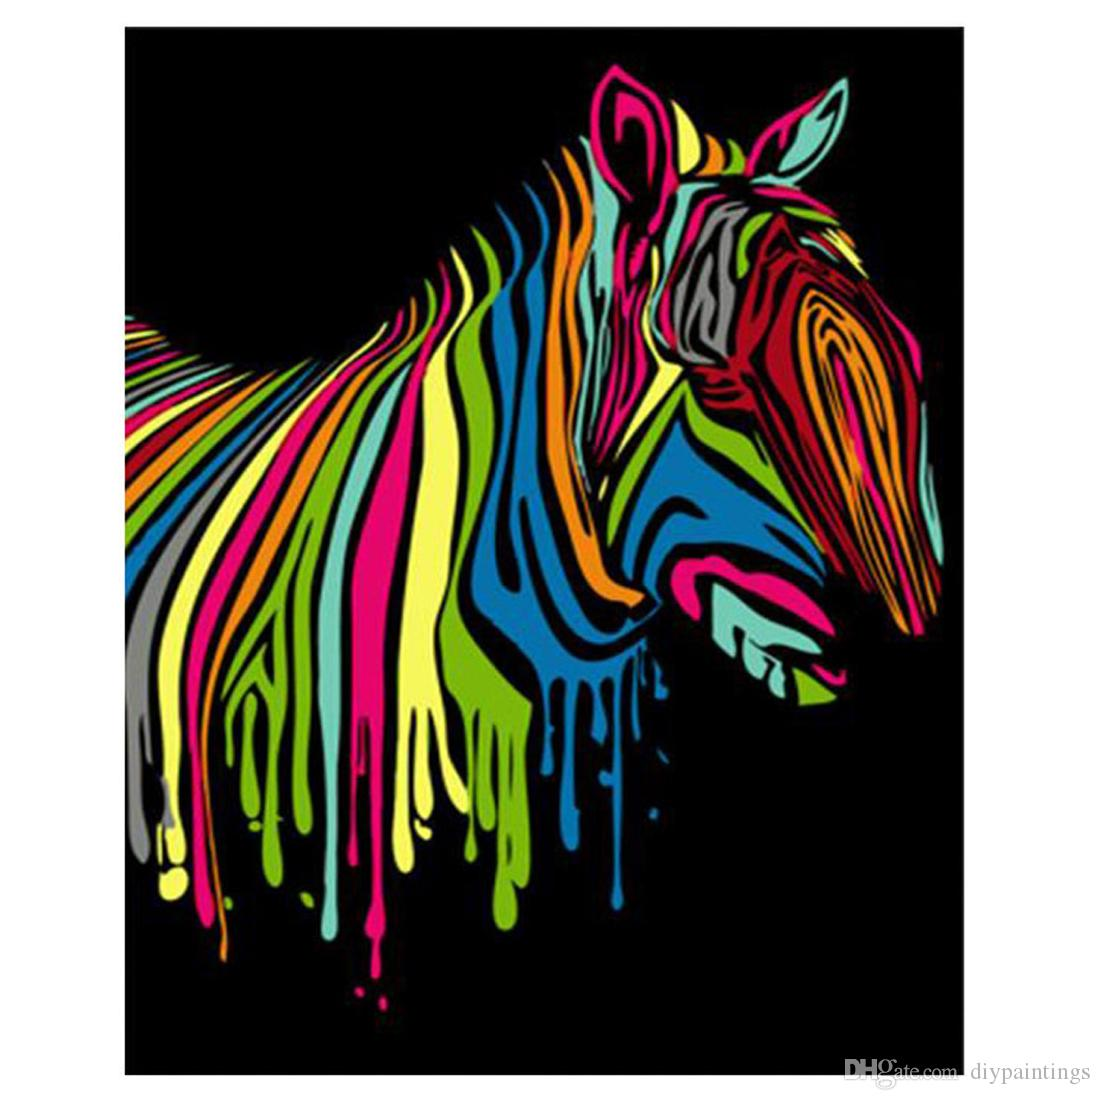 2020 Paint By Numbers Kits With Wooden Framed Or Unframed Diy Abstract Horse Painting With Acrylic Paints Brushes For Adults Beginners Kids From Diypaintings 11 33 Dhgate Com